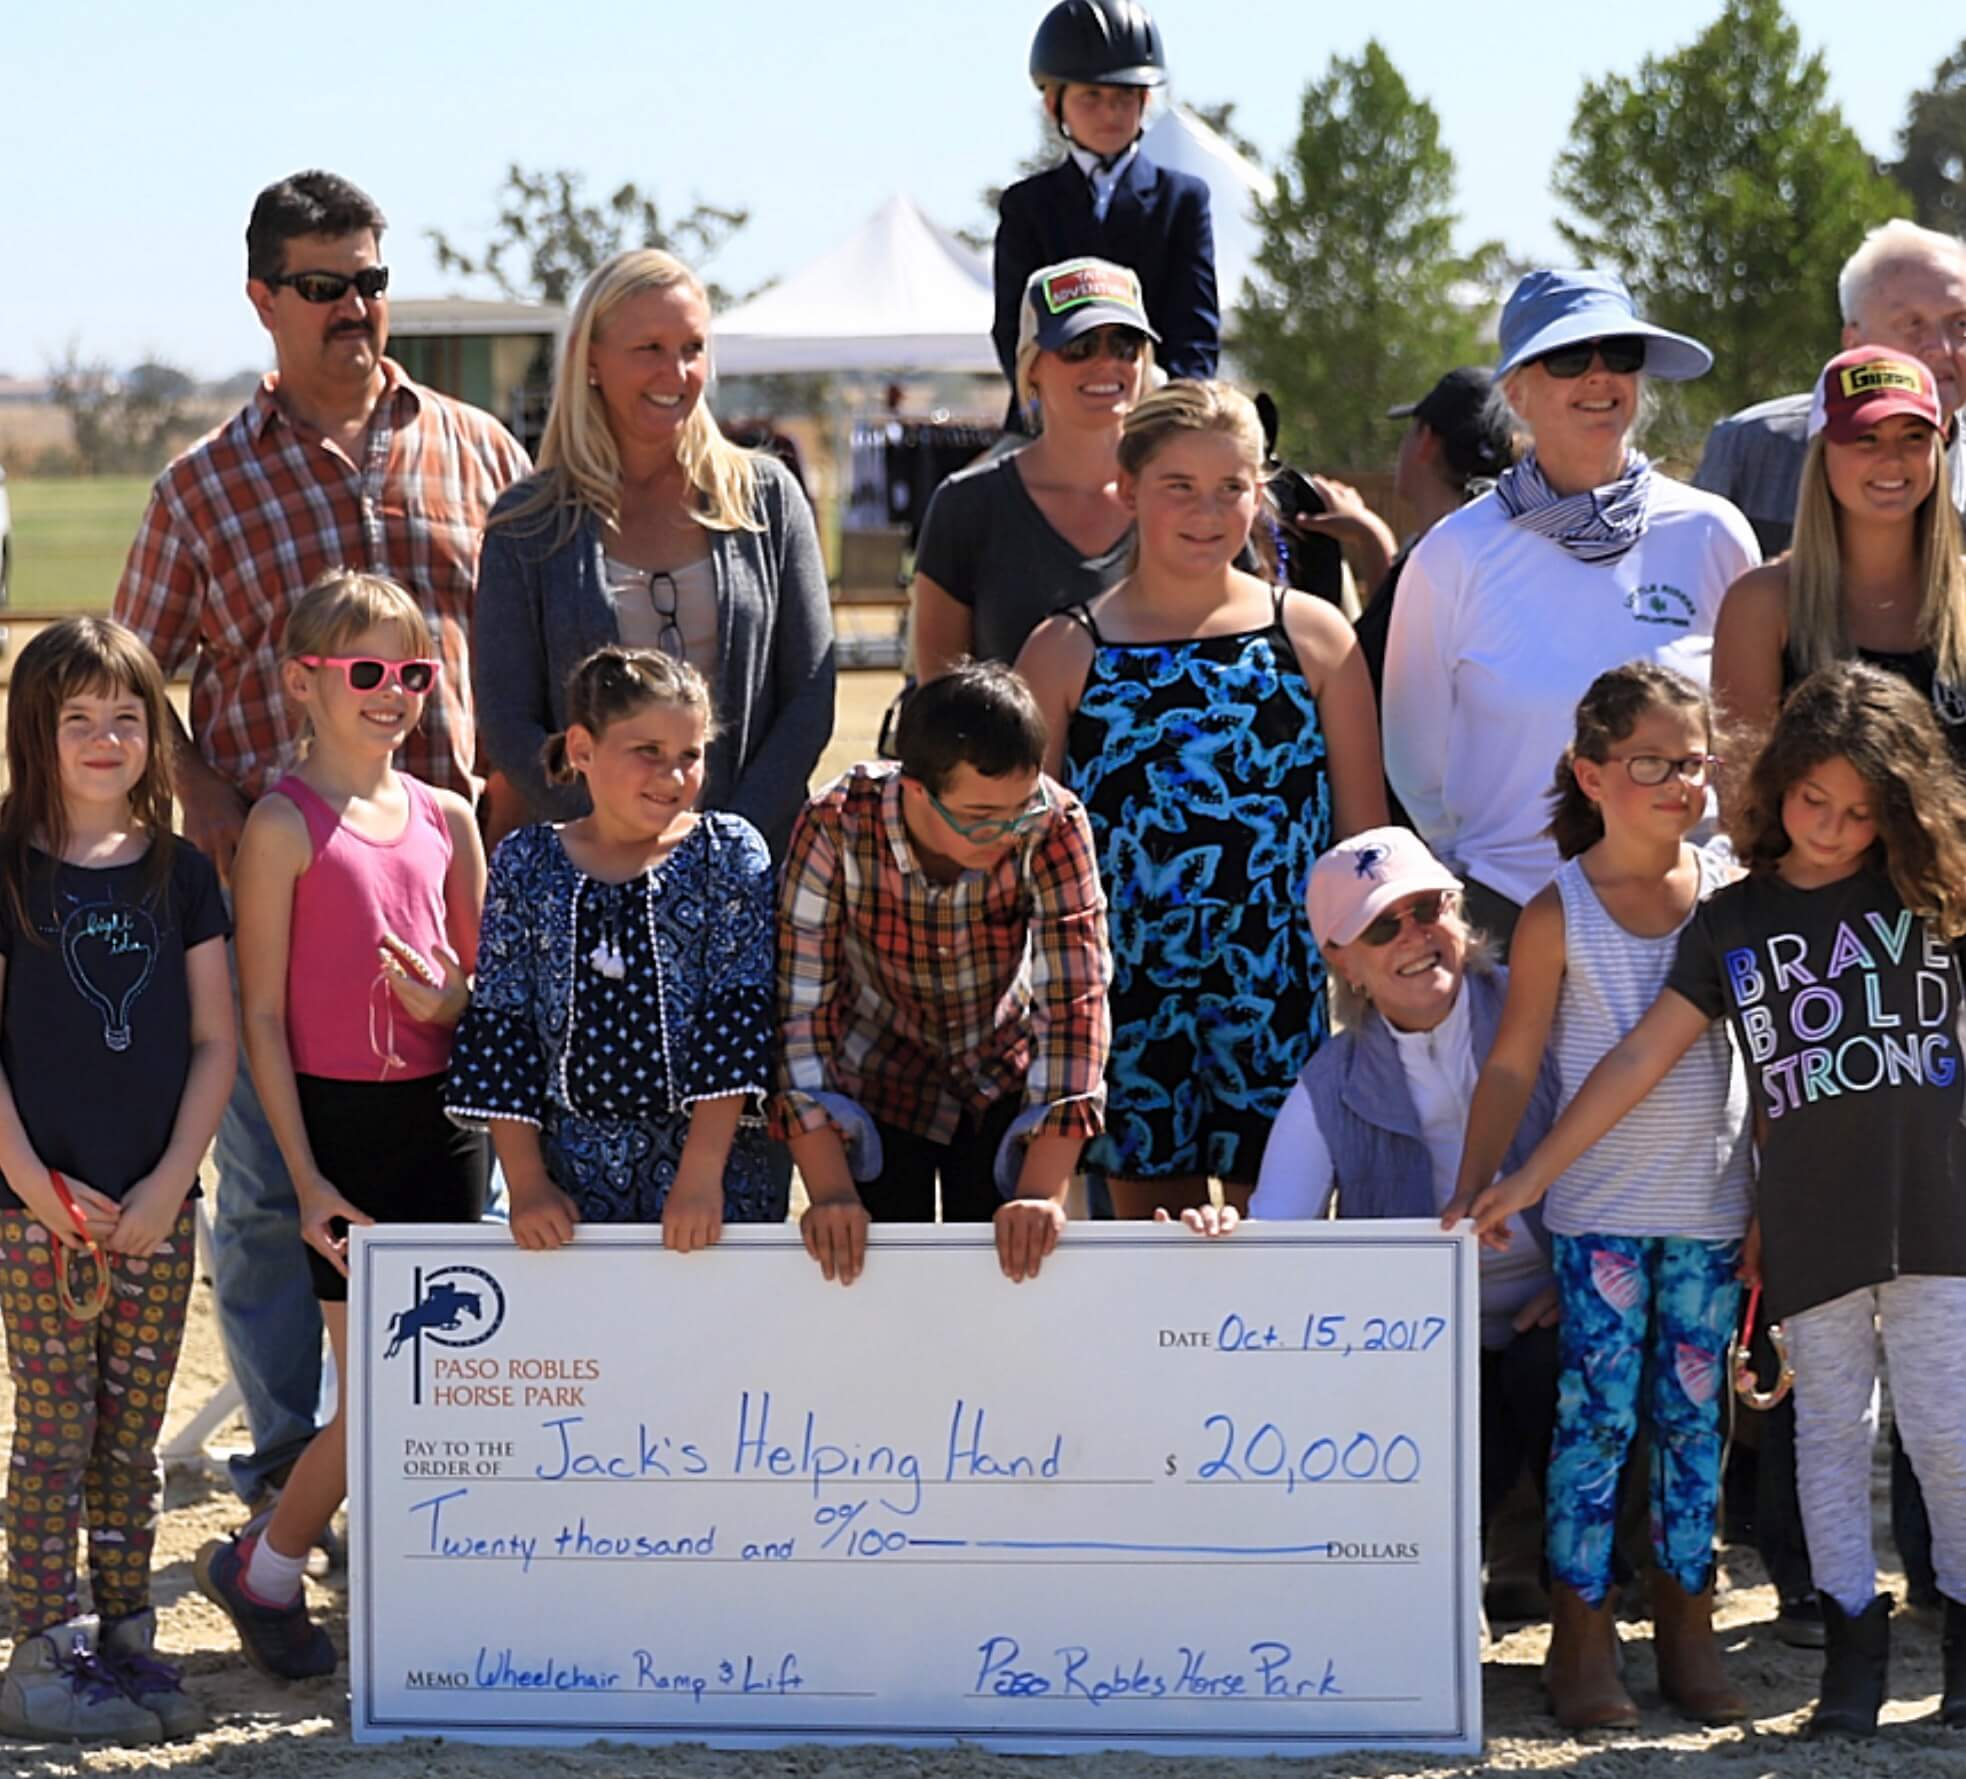 Paso Robles Horse Park Foundation Jumps Into the Fun of a Fundraiser